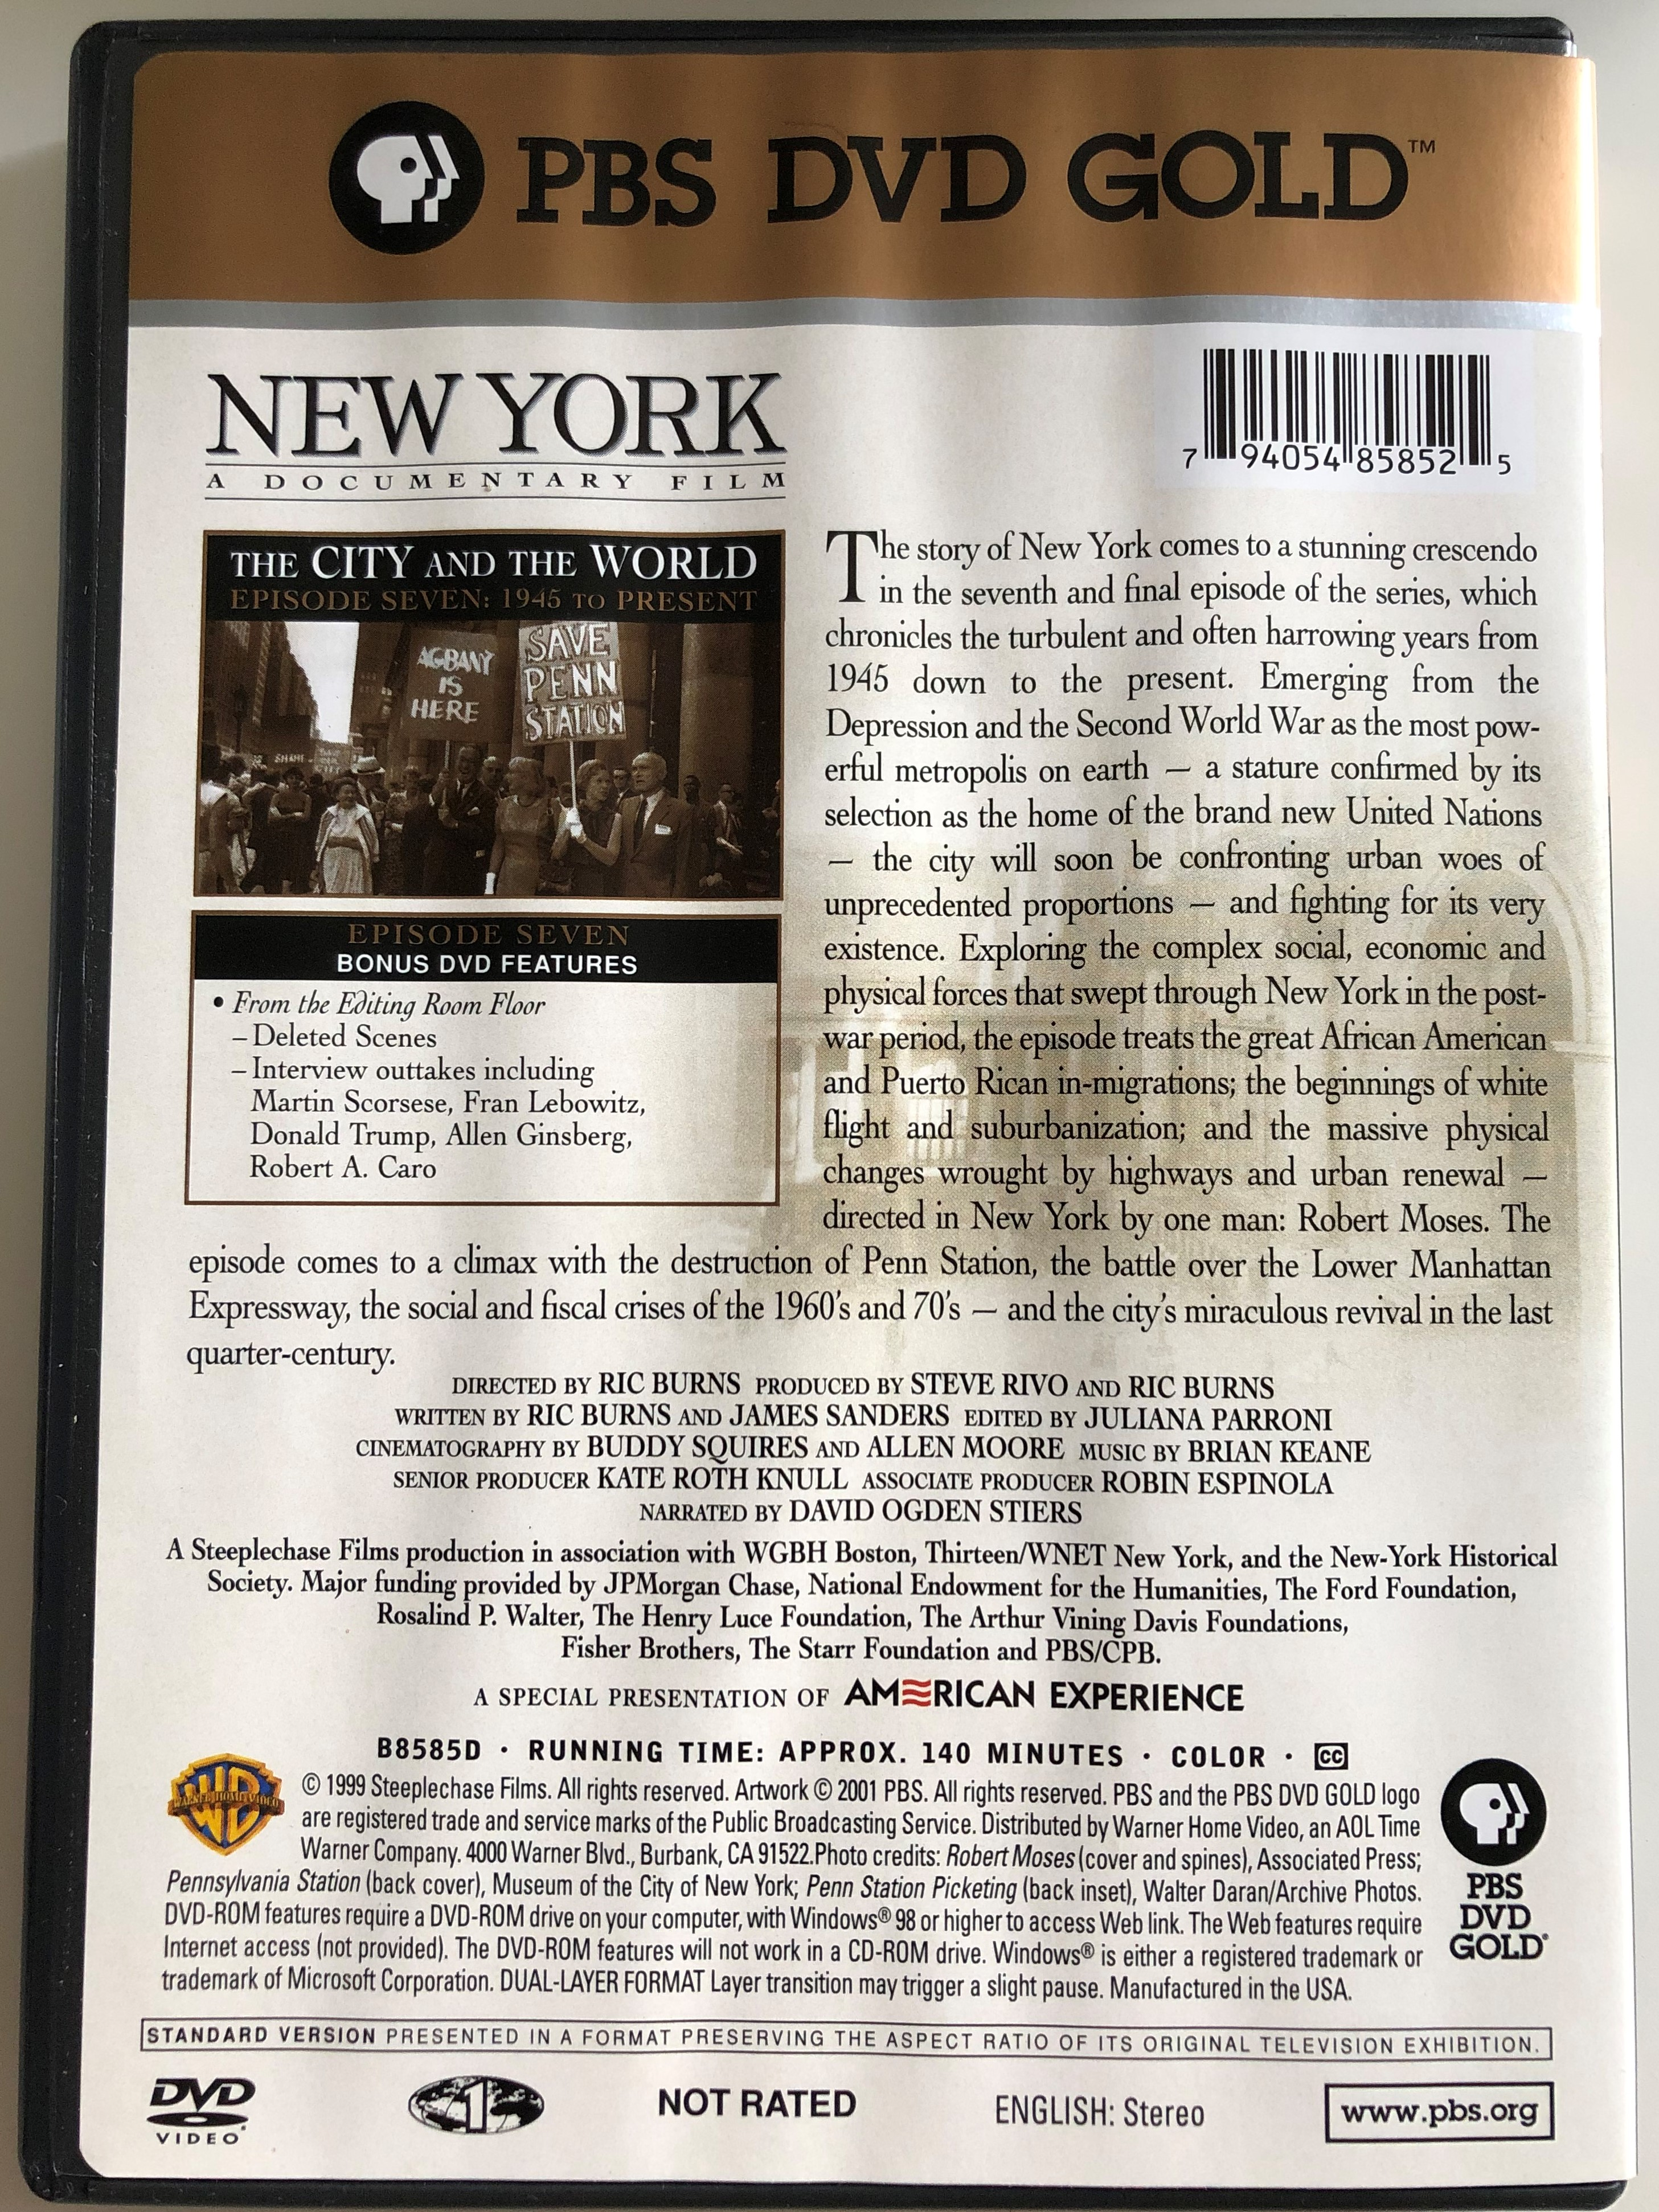 new-york-episode-7-1945-to-present-dvd-1999-directed-by-ric-burns-3.jpg